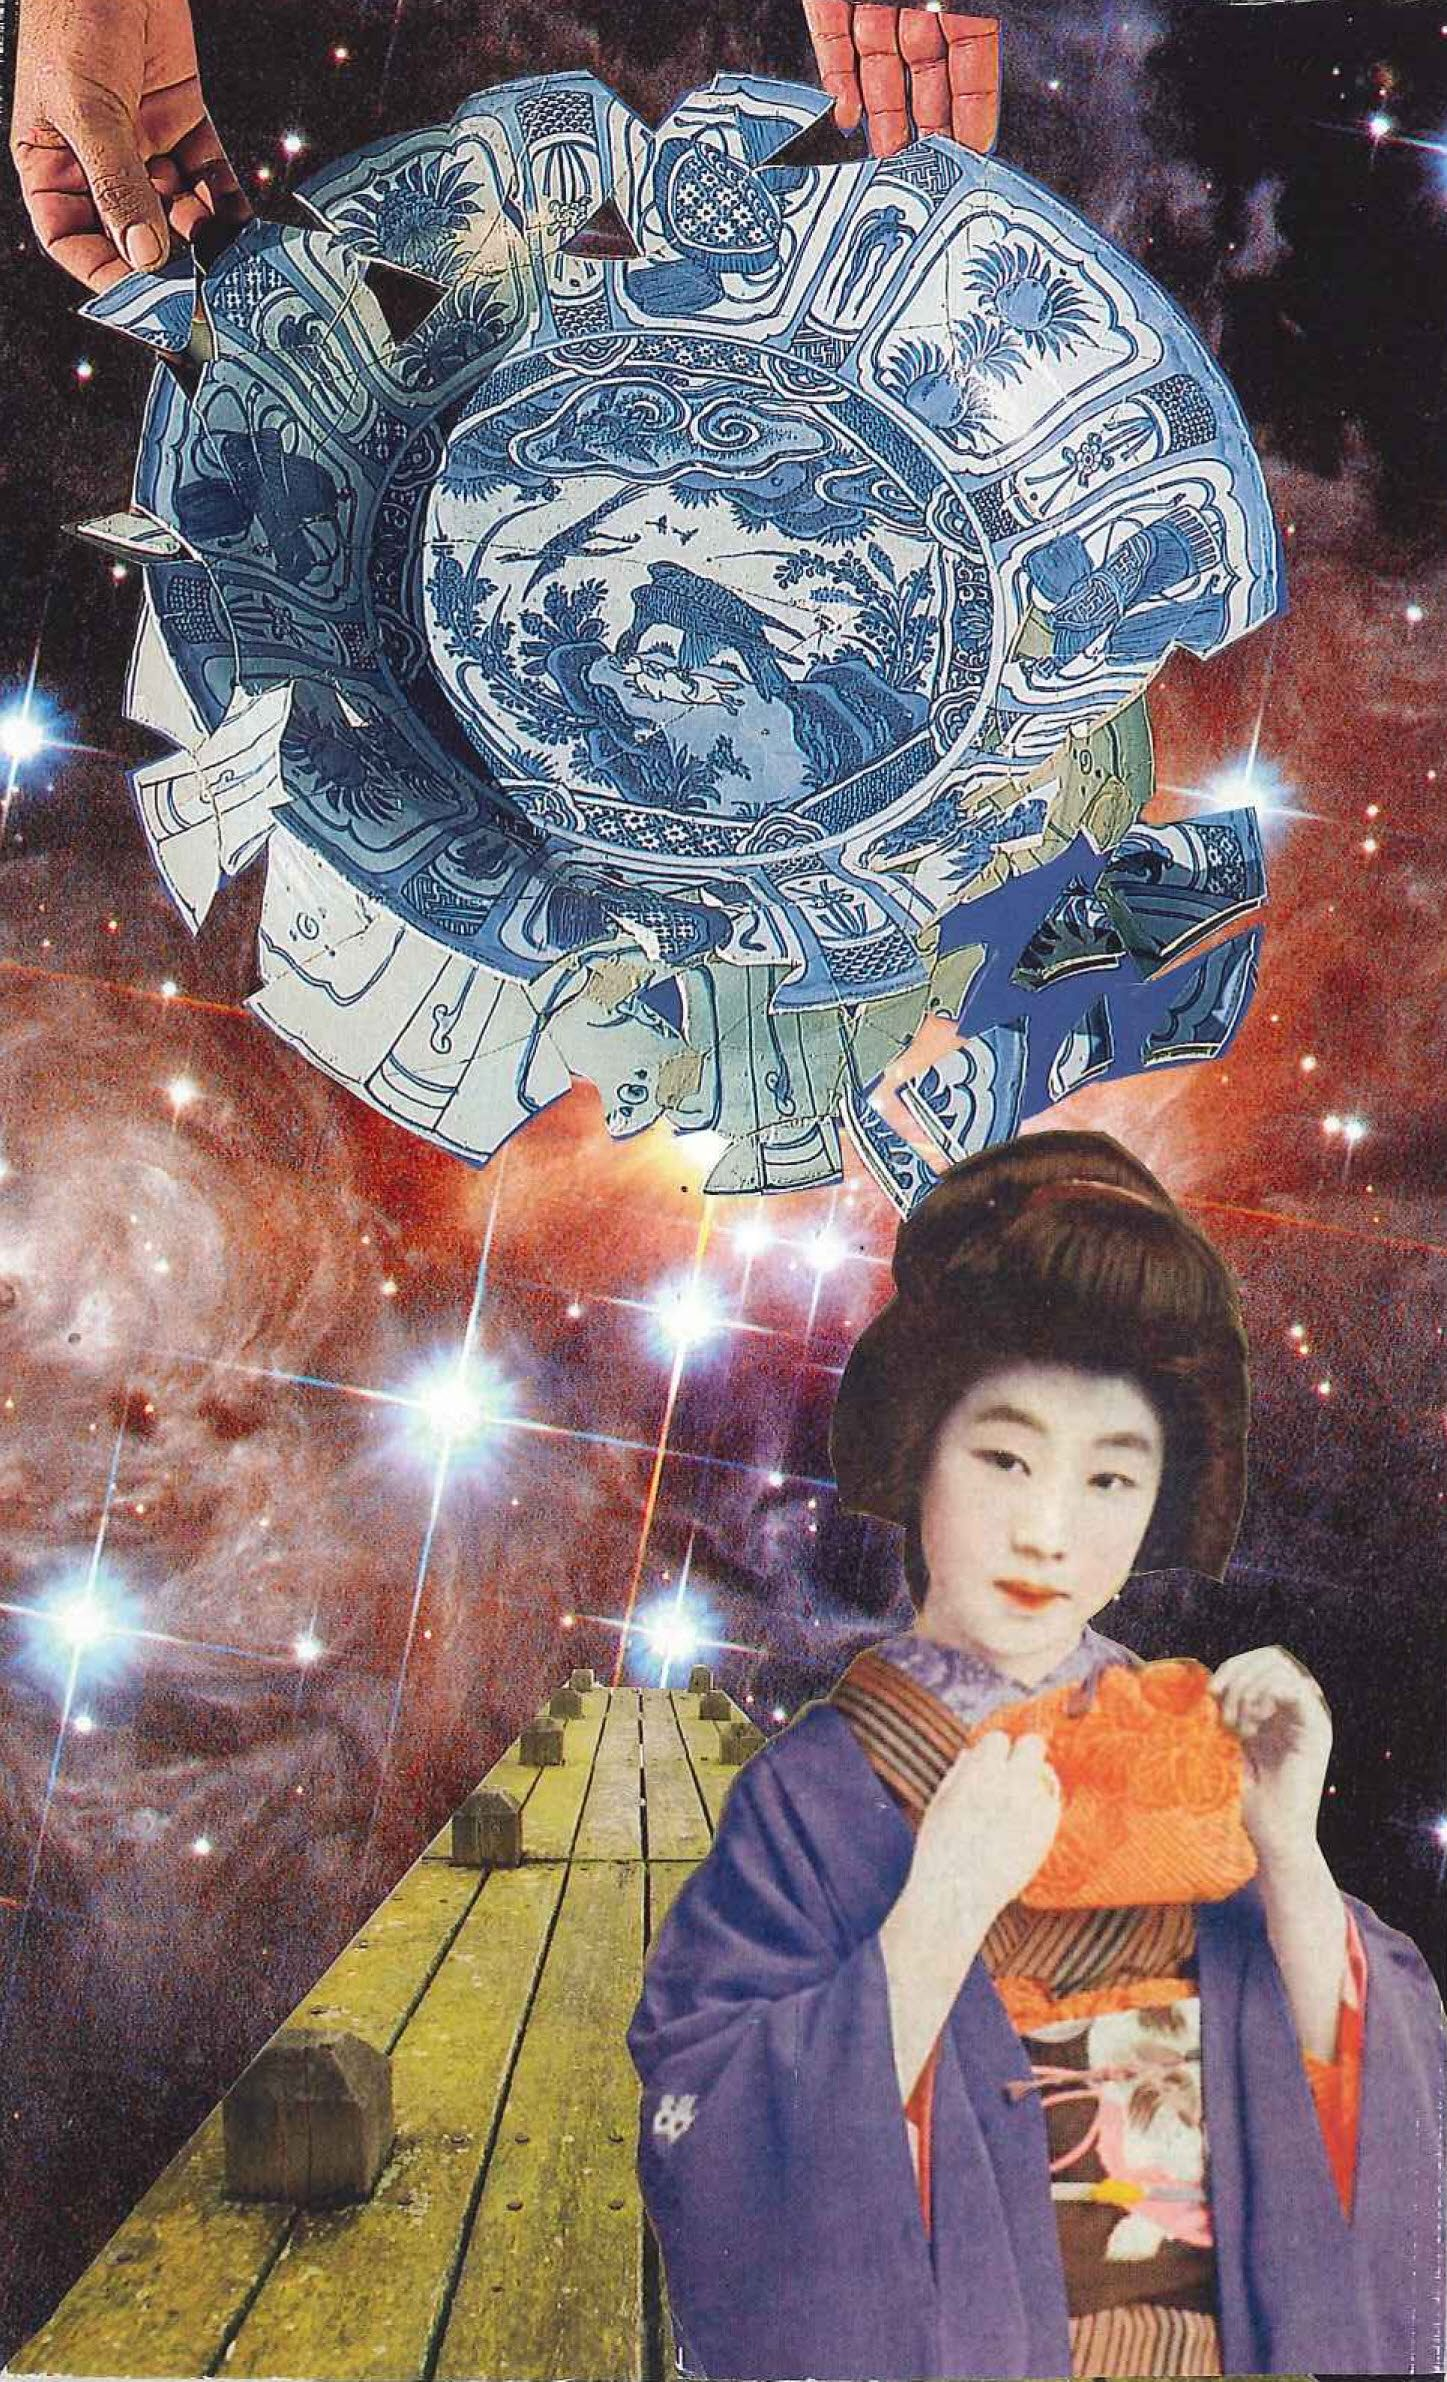 SoulCollage by caren